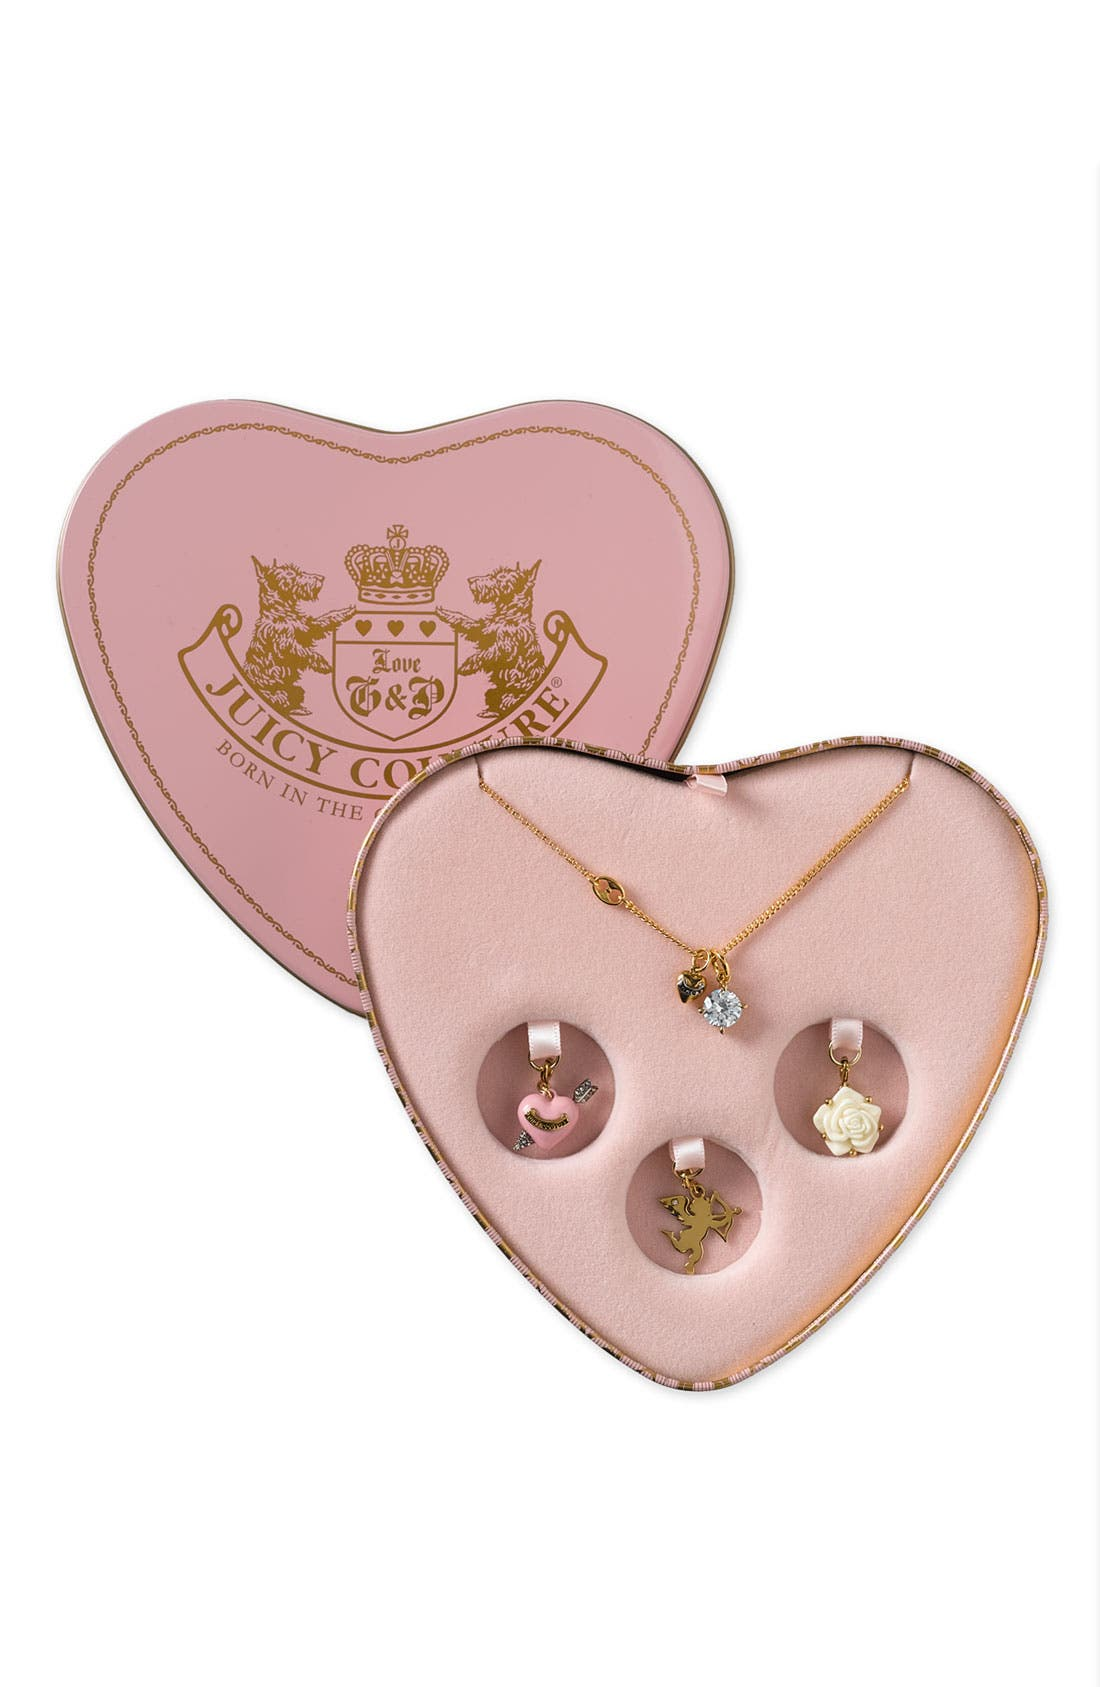 juicy couture charm necklace gift box nordstrom